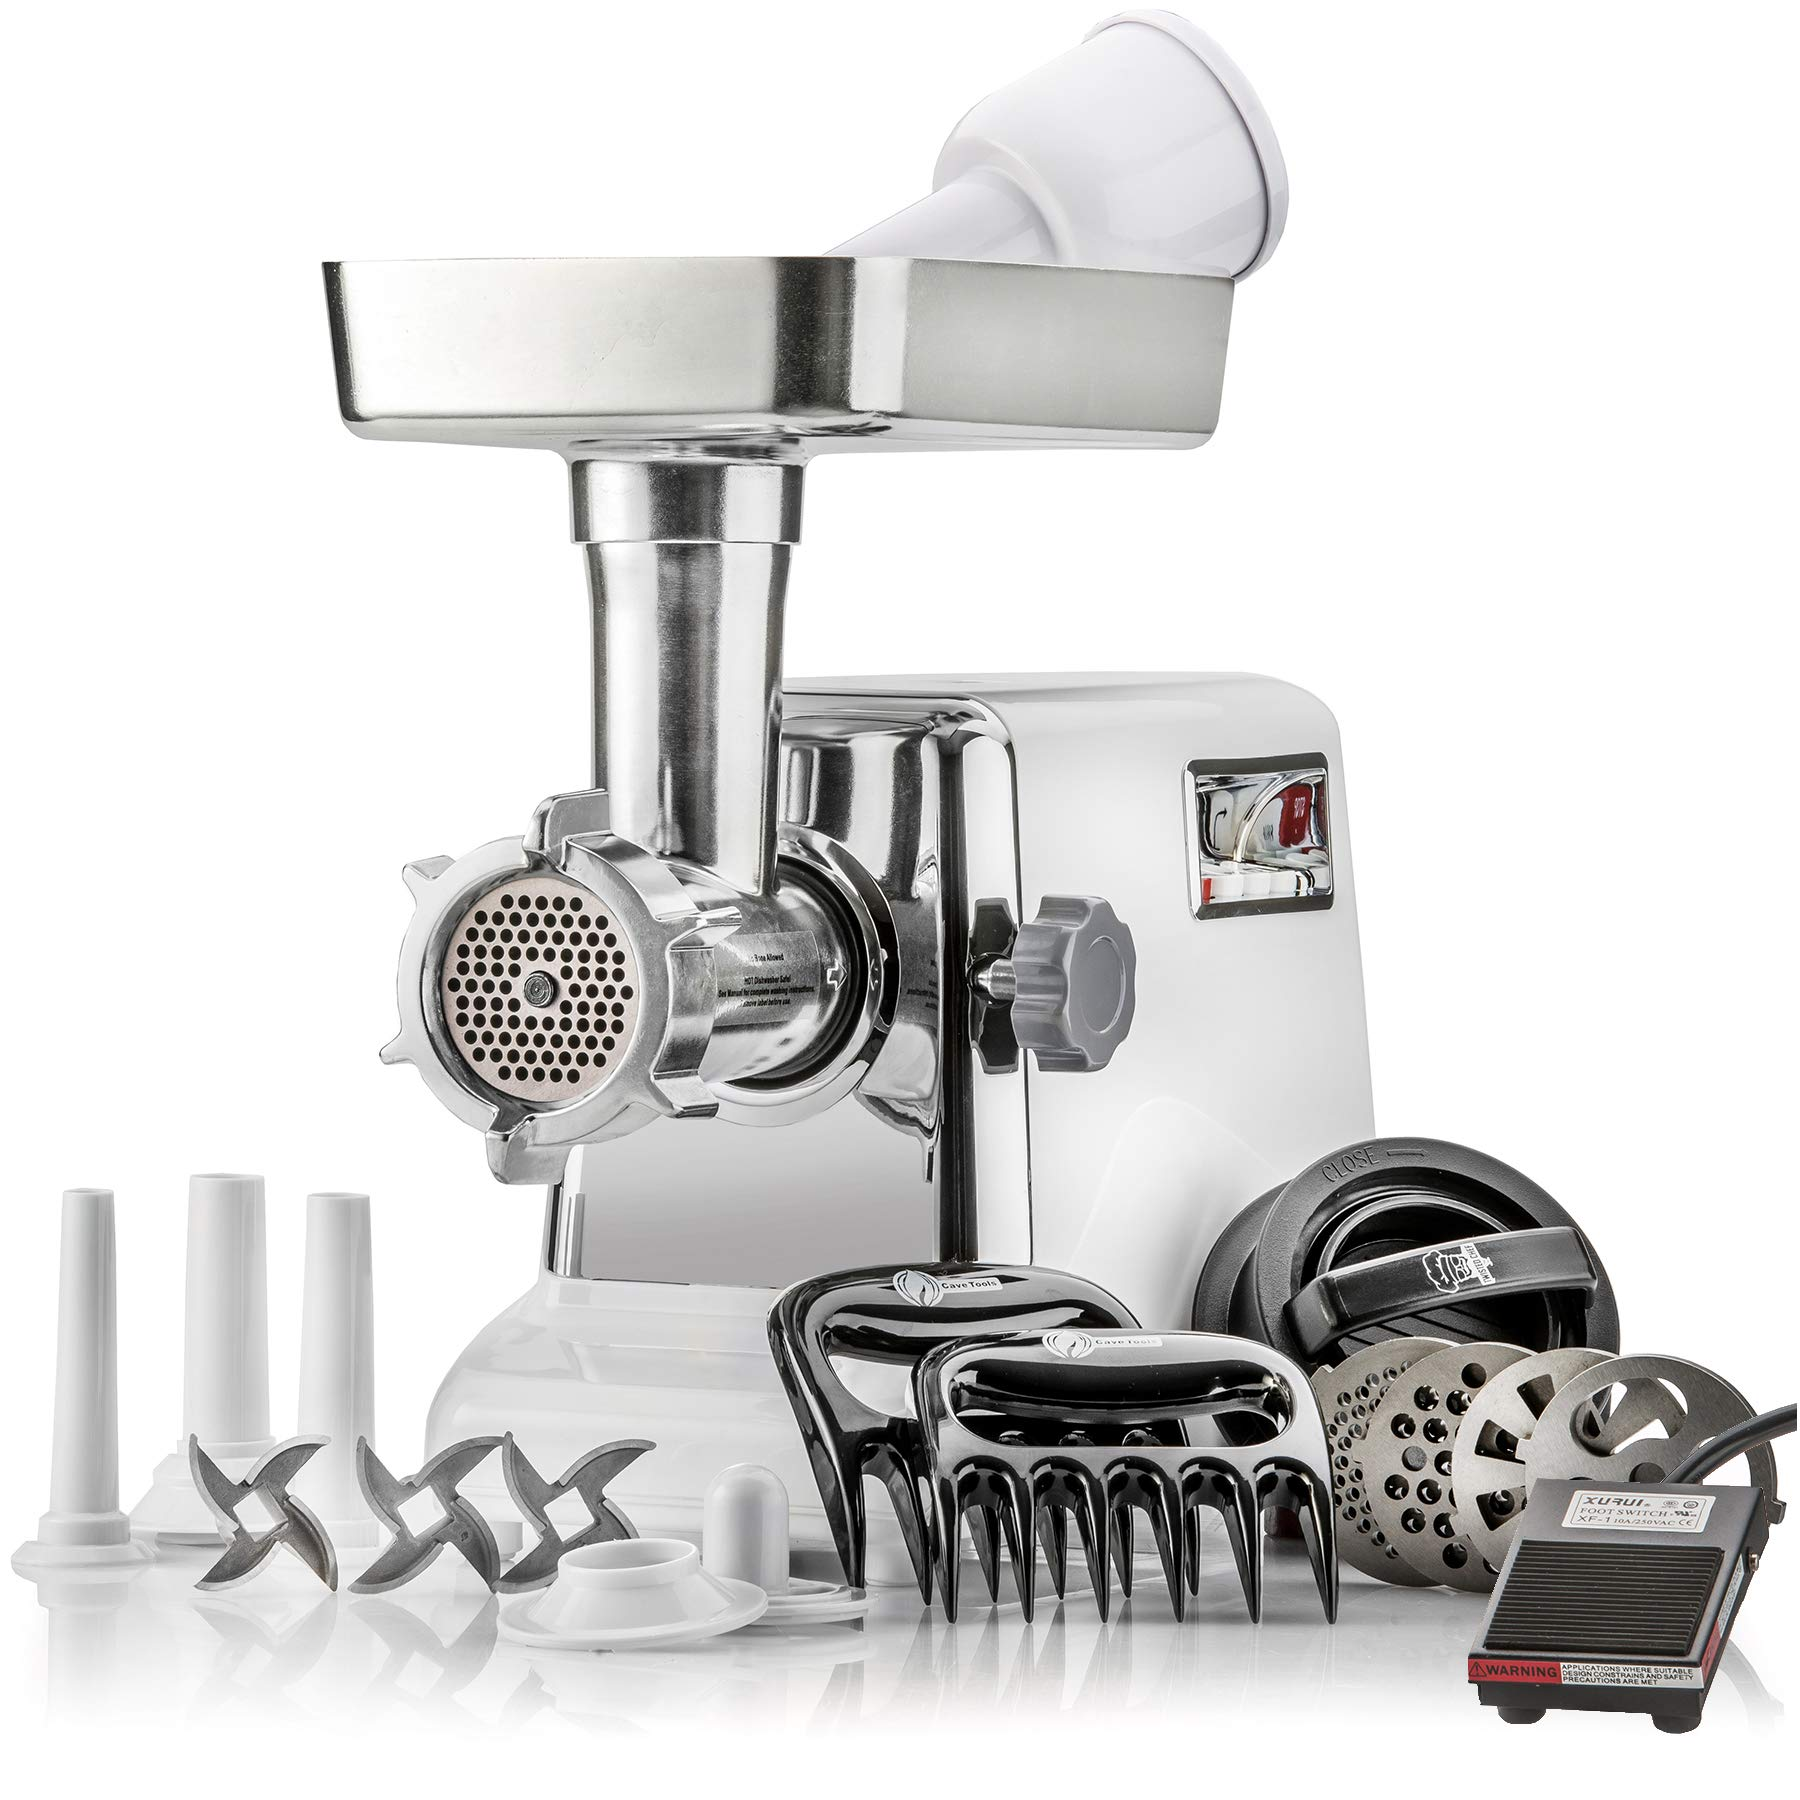 STX Turboforce''Platinum Edition'' Electric Meat Grinder w/Foot Pedal & Sausage Stuffer - Heavy Duty - 4 Grinding Plates, 3 S/S Blades, 3 Sausage Tubes, Kubbe Attachment, 2 Meat Claws and Burger Press by STX INTERNATIONAL